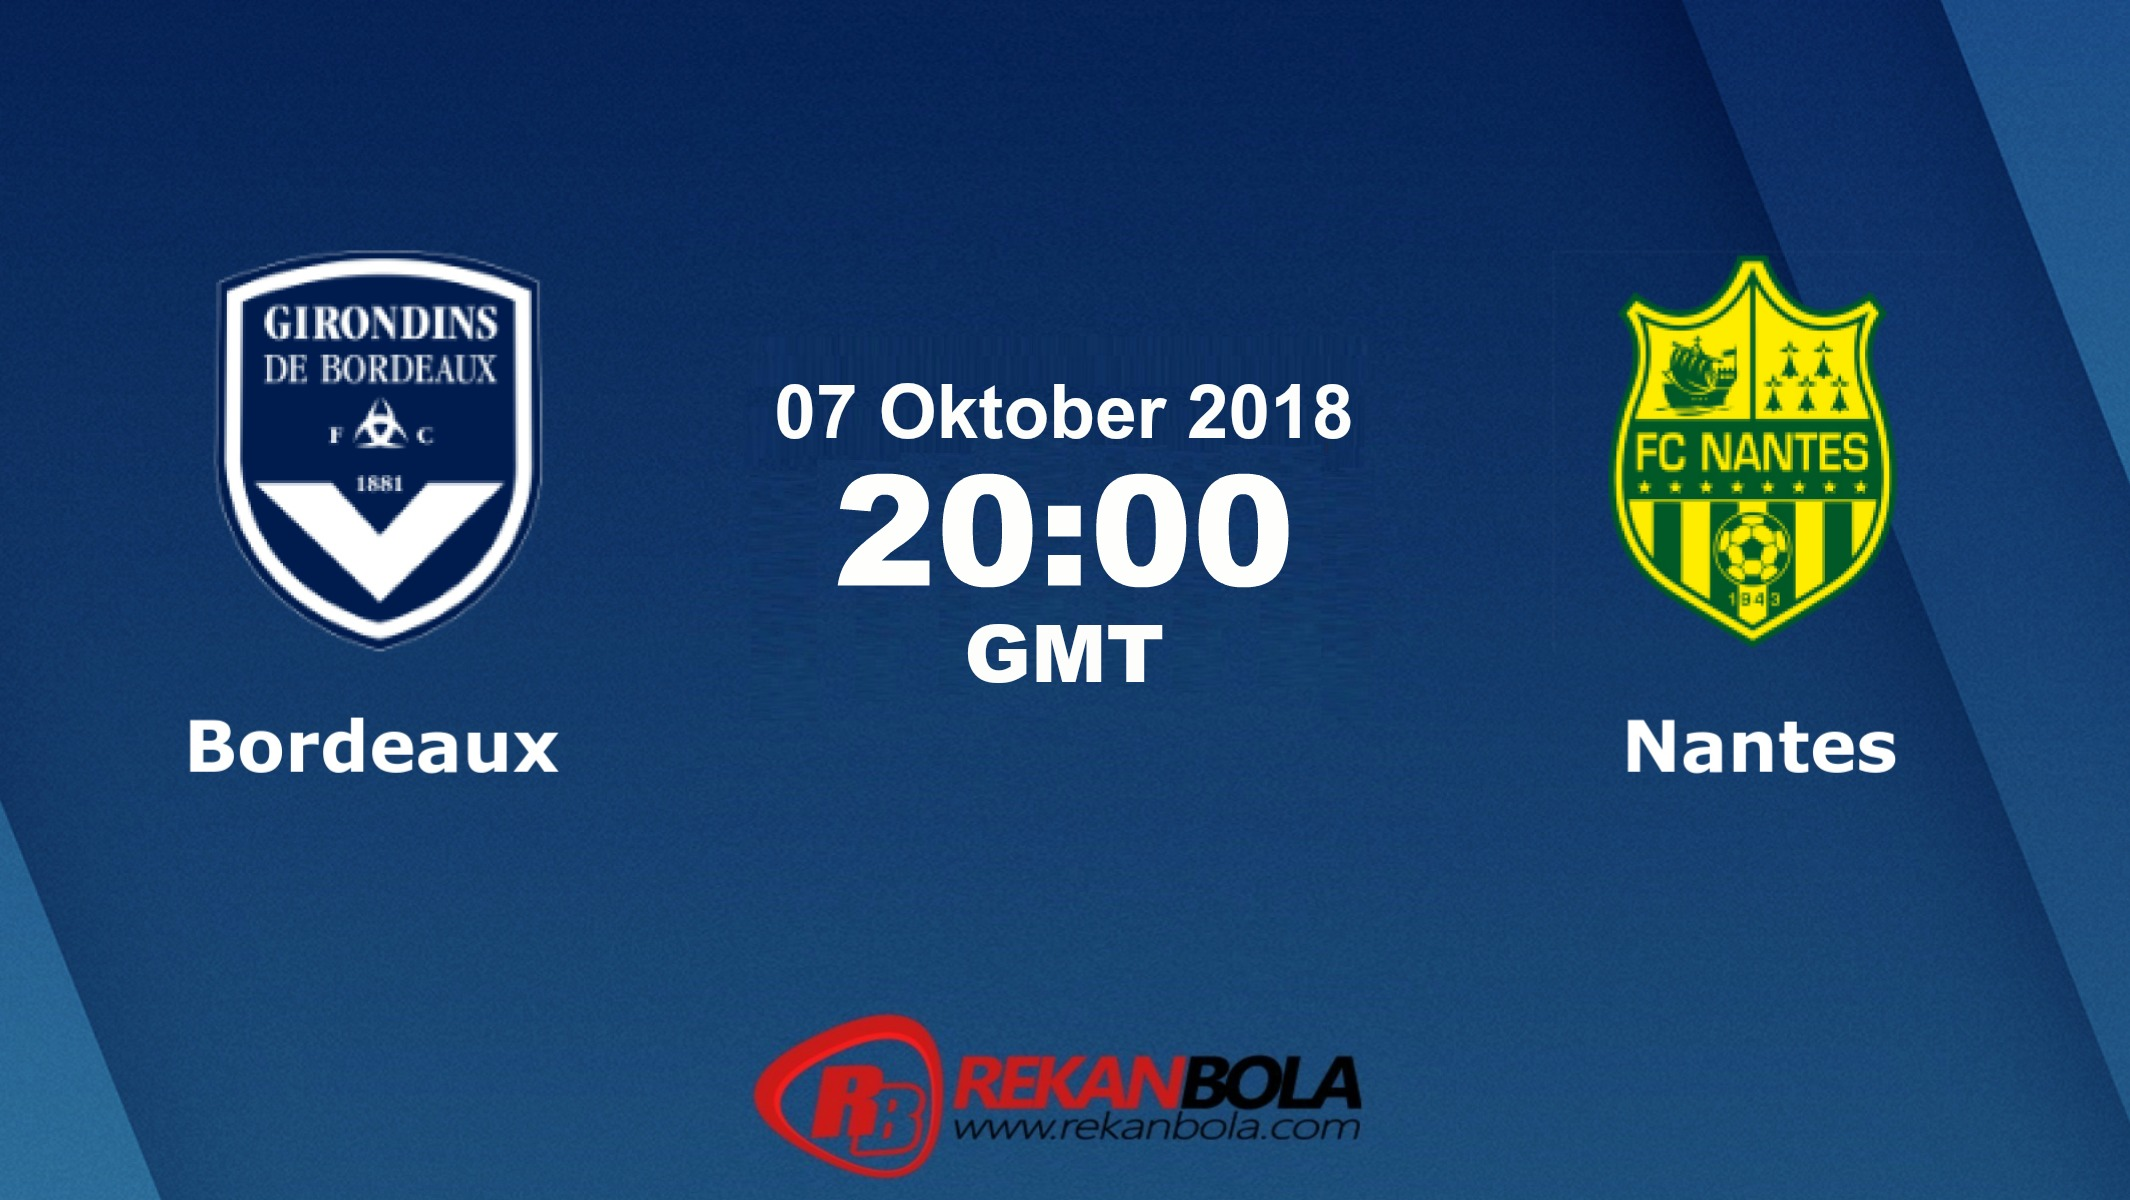 Nonton Siaran Live Streaming Bordeaux Vs Nantes 07 Oktober 2018